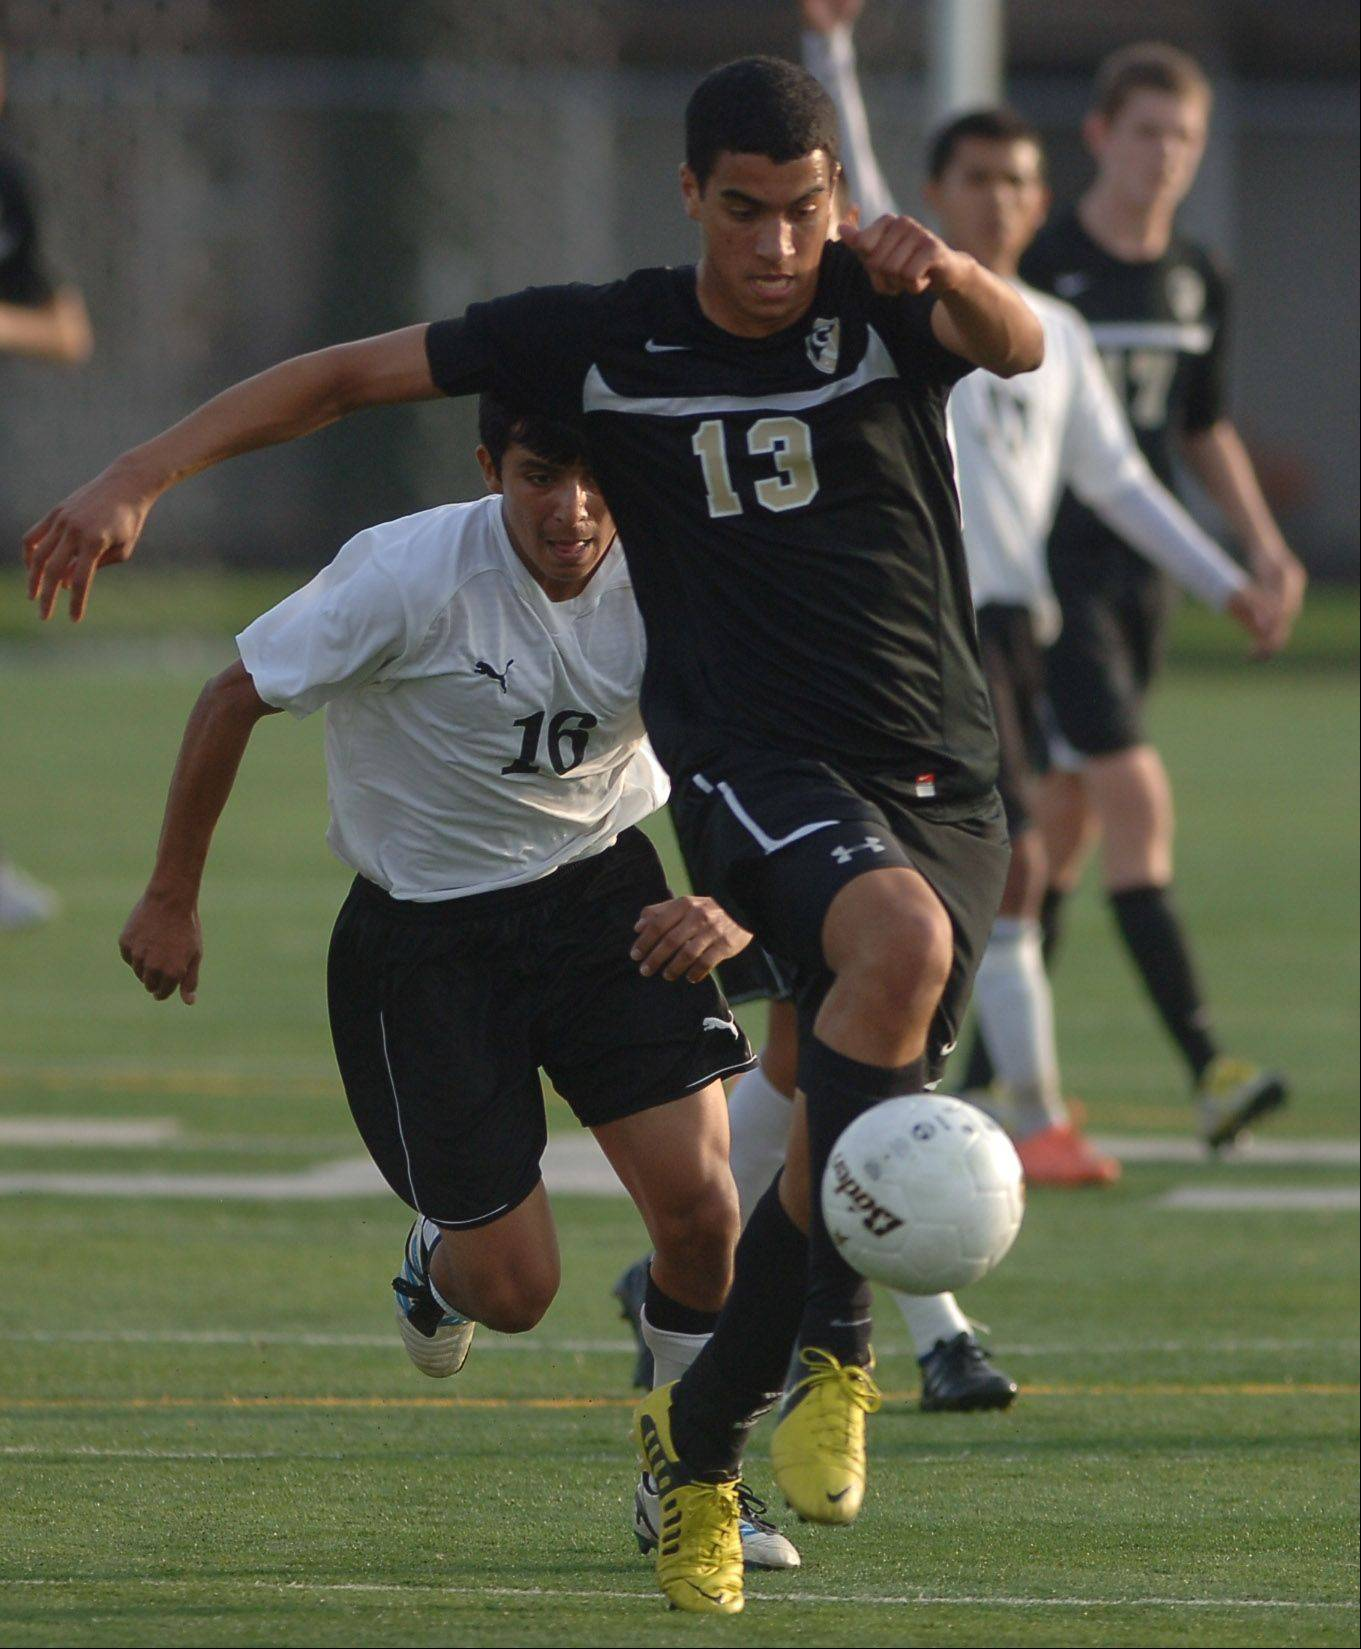 Grayslake North's Arnaud Laroche-Bataille (13) takes control of the ball in front of Harvard's Isaih Solis during Wednesday's Class 2A soccer sectional semifinal game at Grayslake Central.